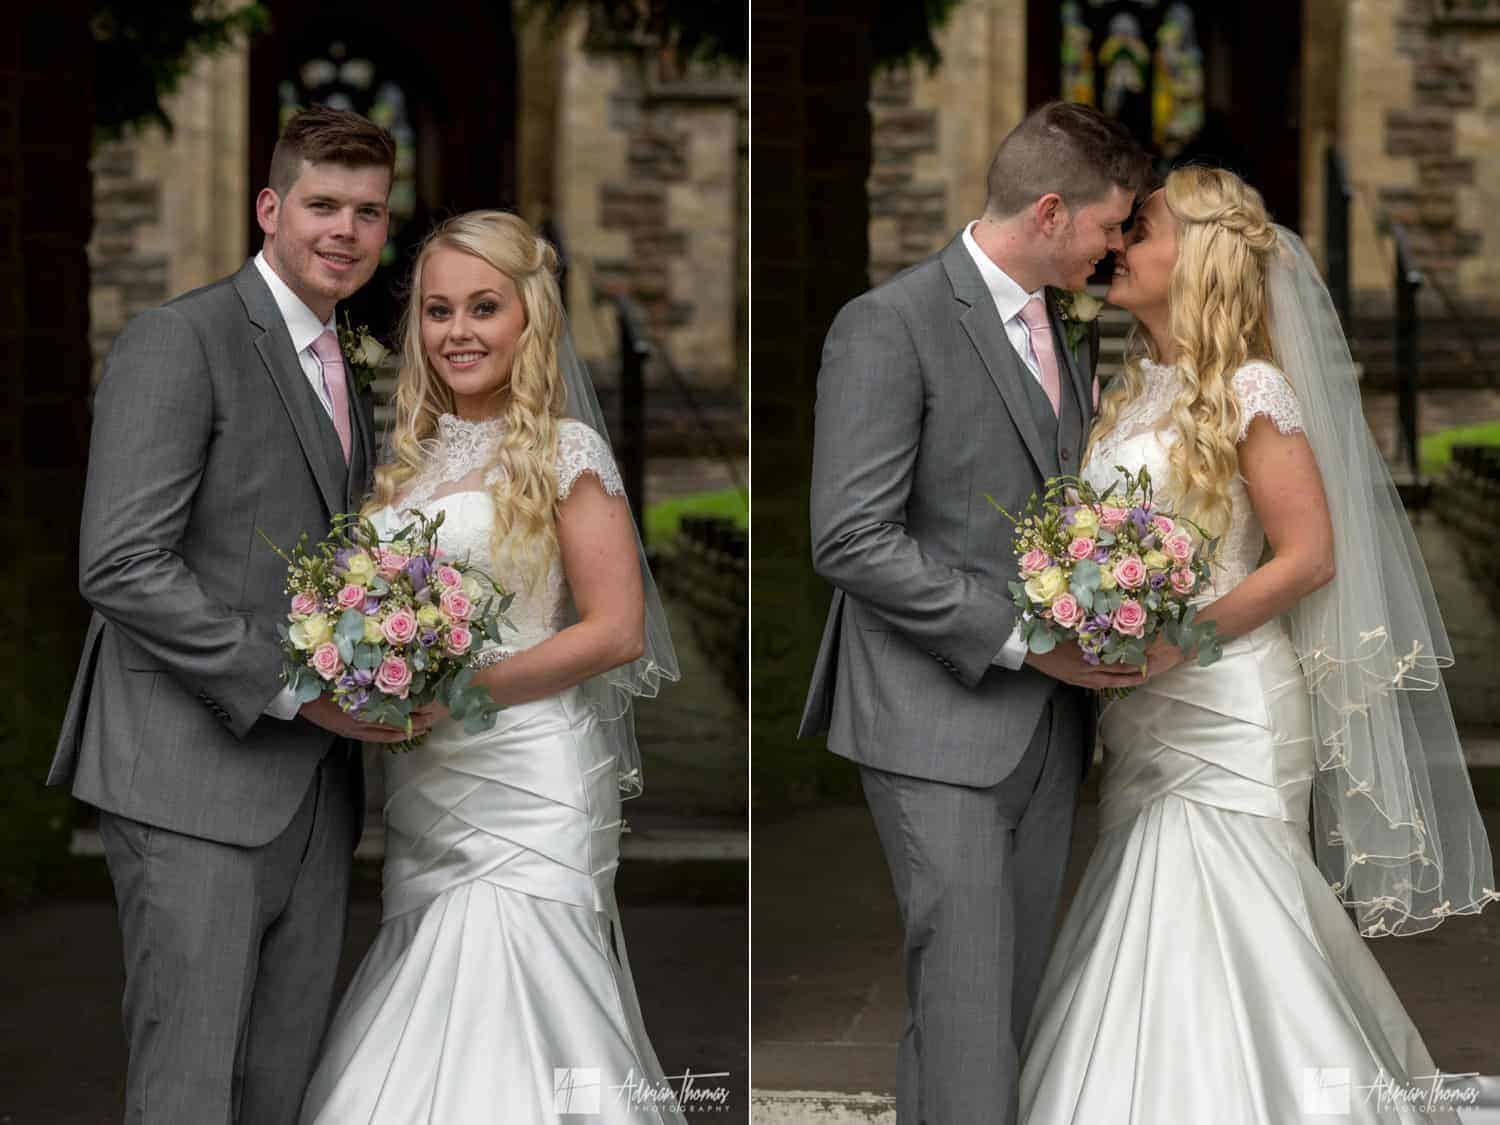 Bride and groom kissing at their St Martin's Church Caerphilly wedding.